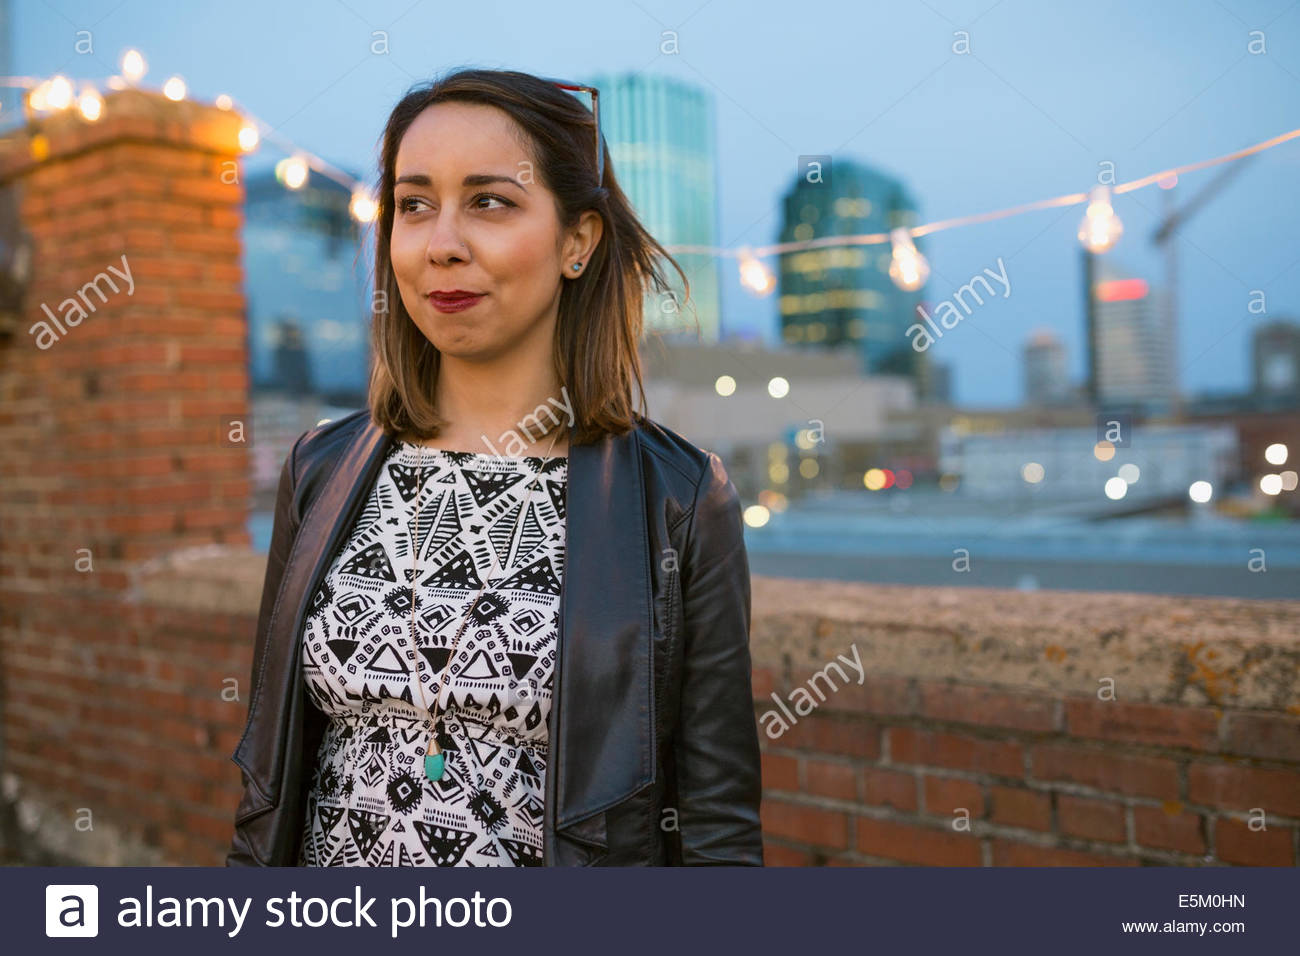 Smiling woman sitting on urban rooftop Photo Stock